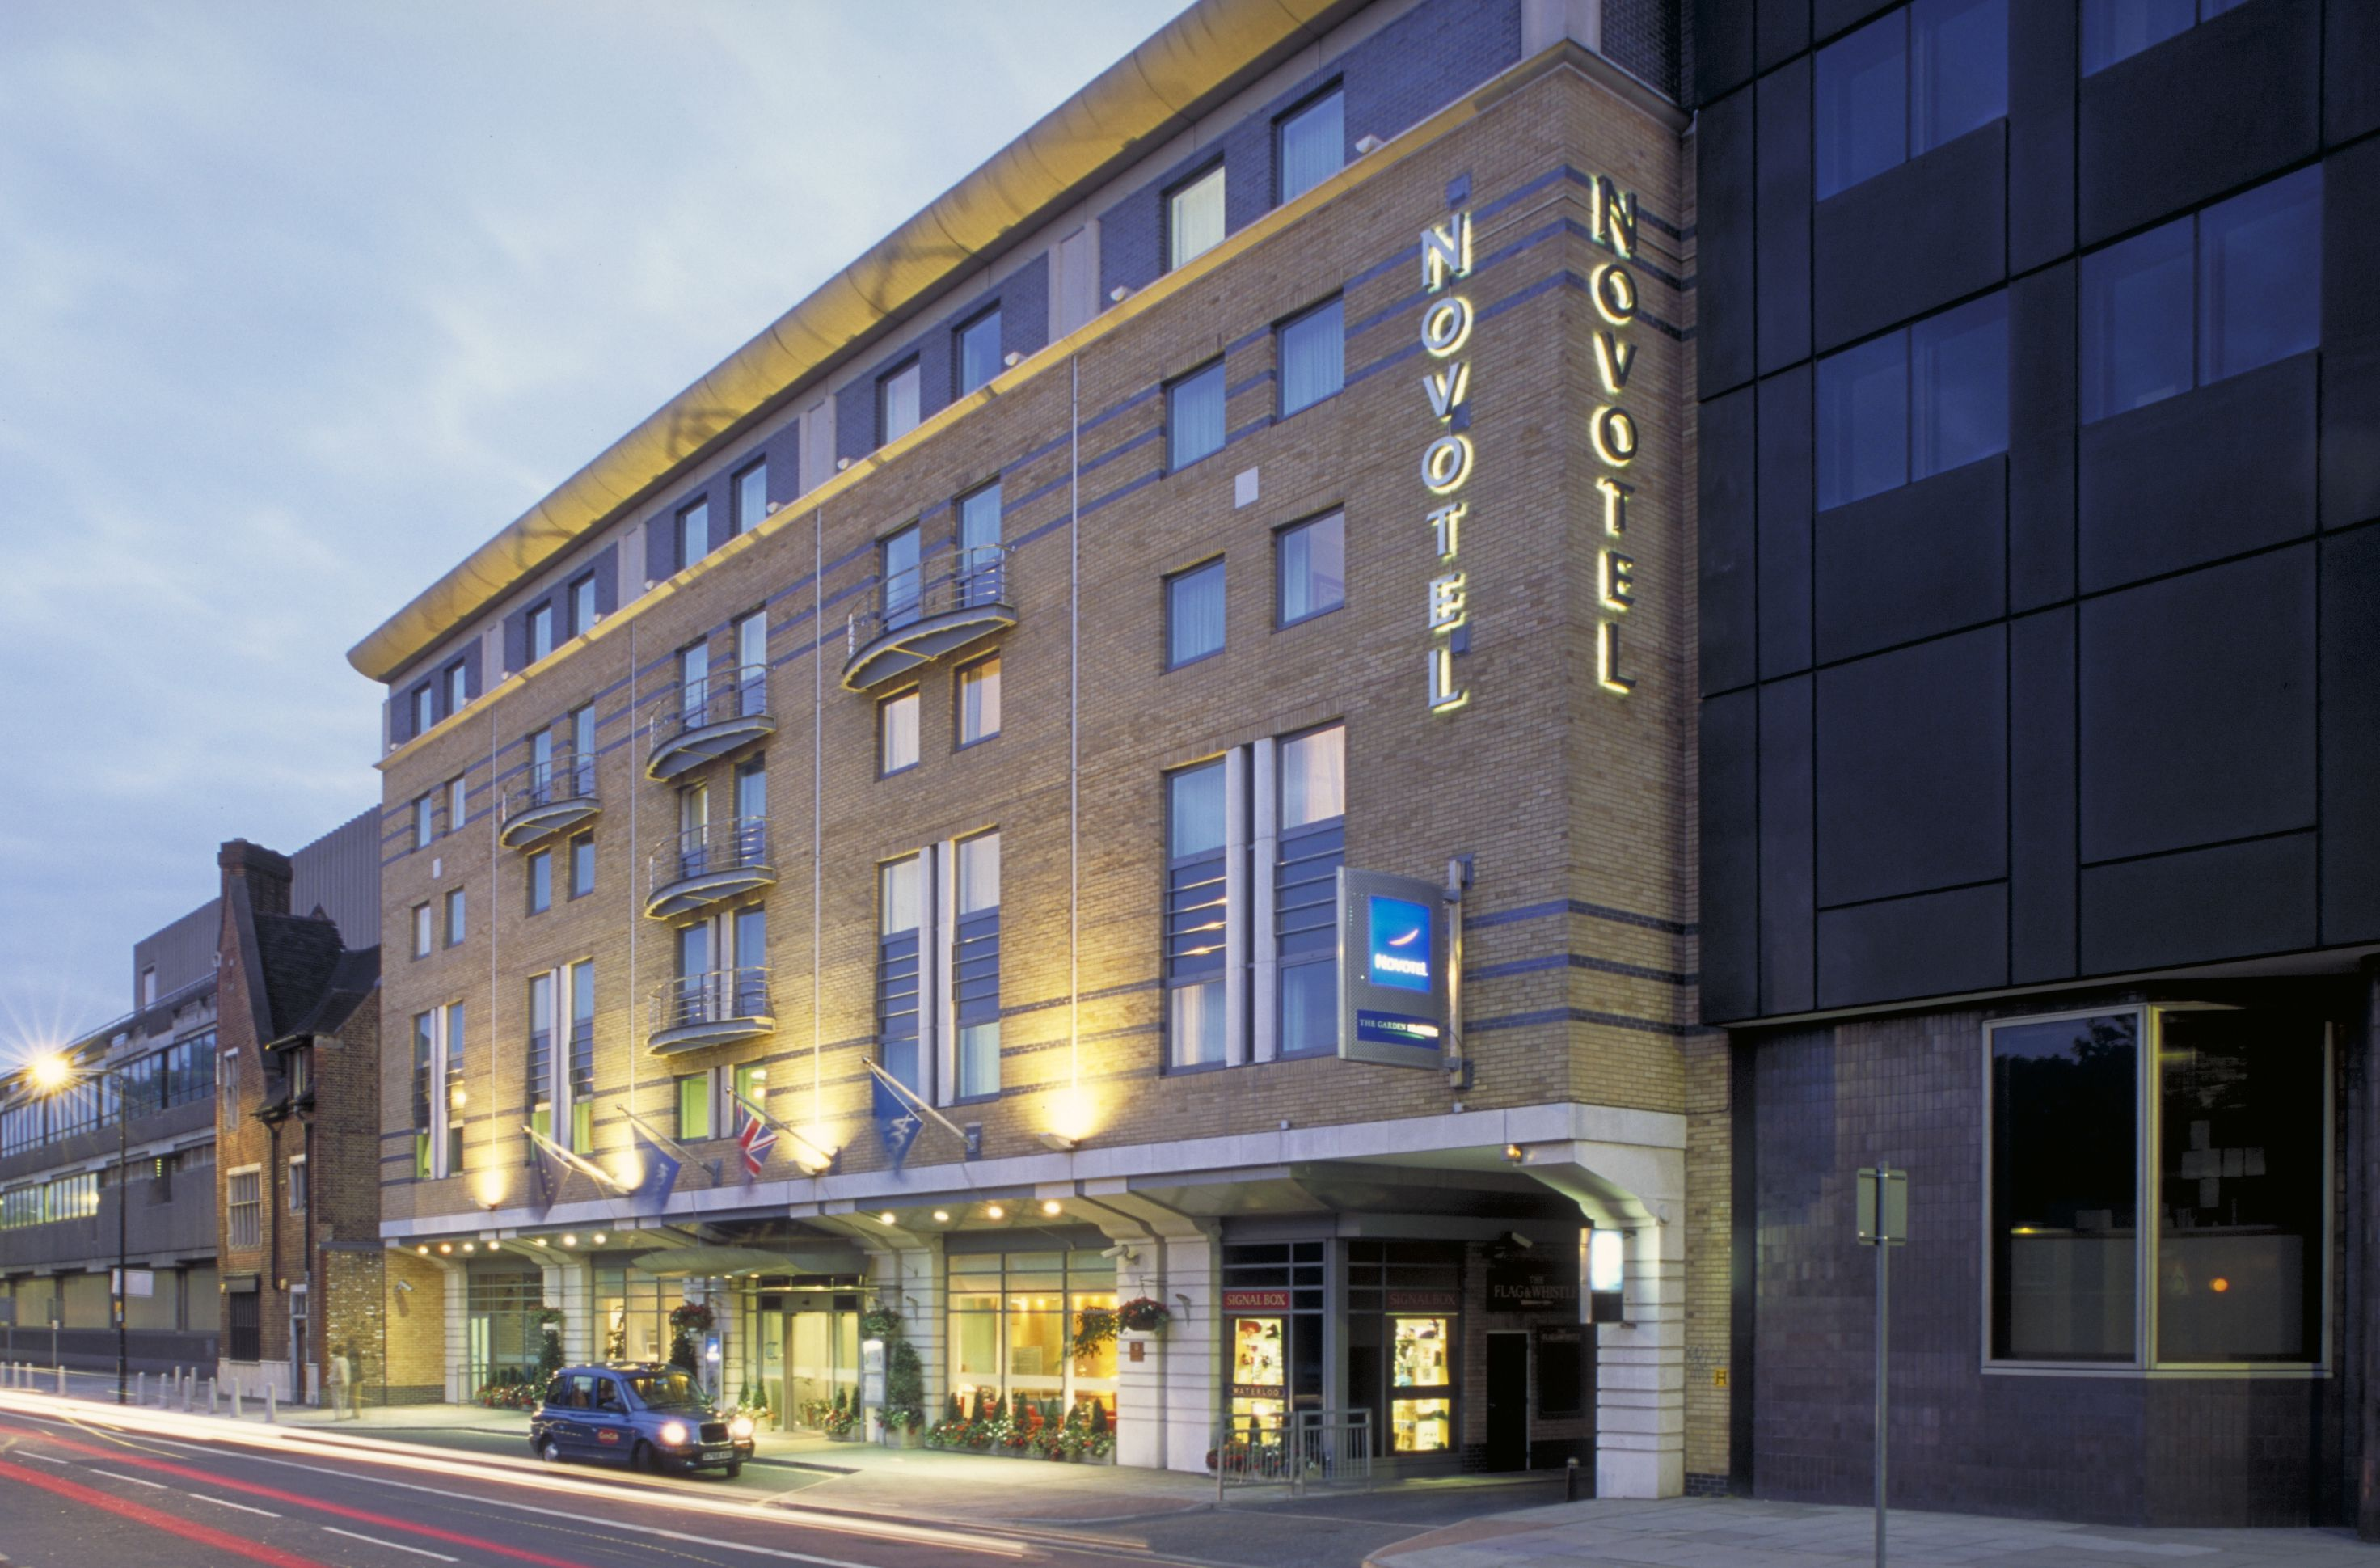 Hotel Novotel London Waterloo London